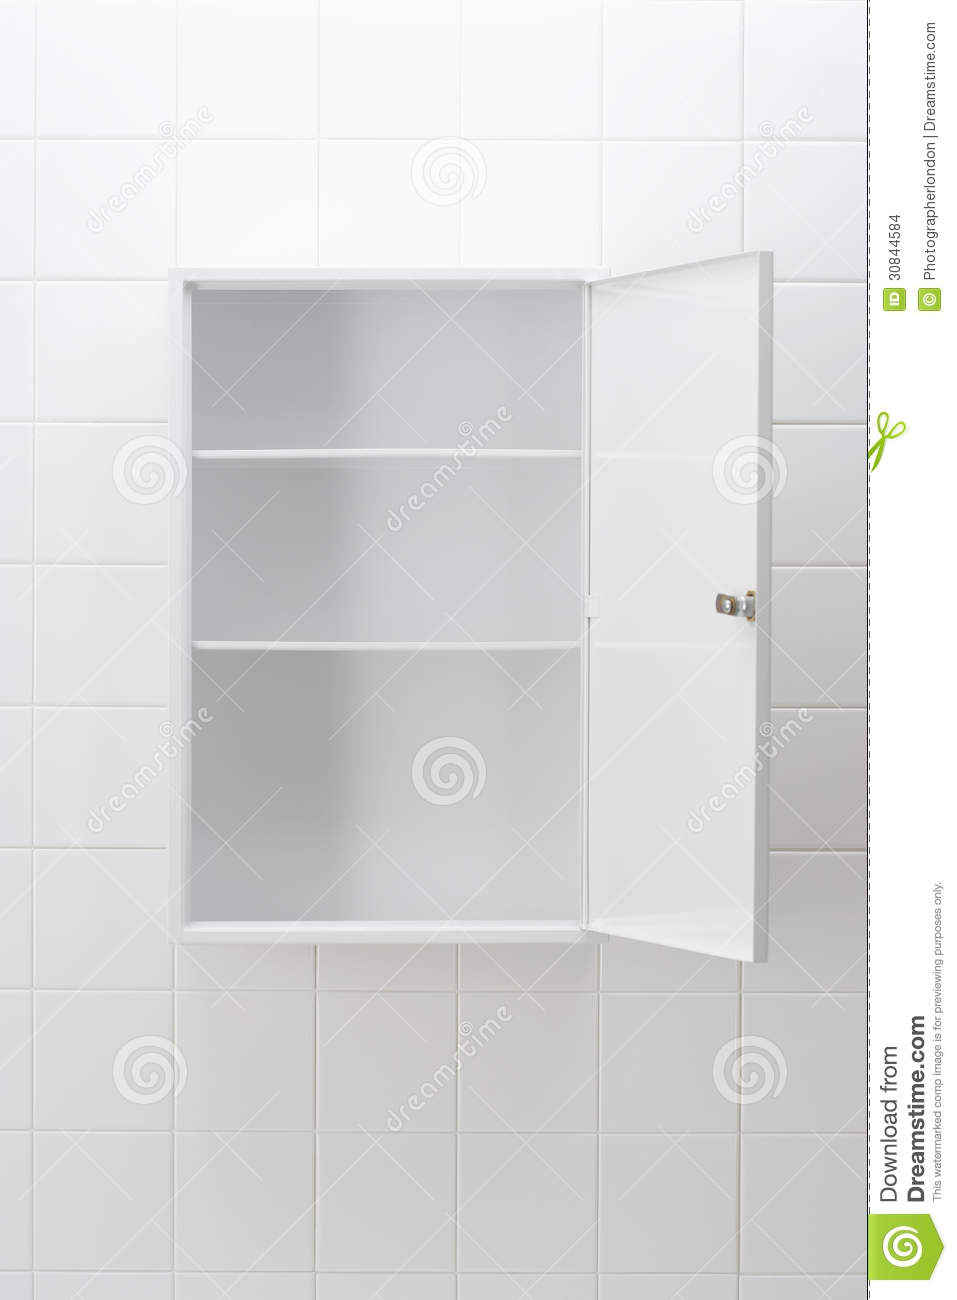 Empty Bathroom Cabinet Stock Images - Image: 30844584